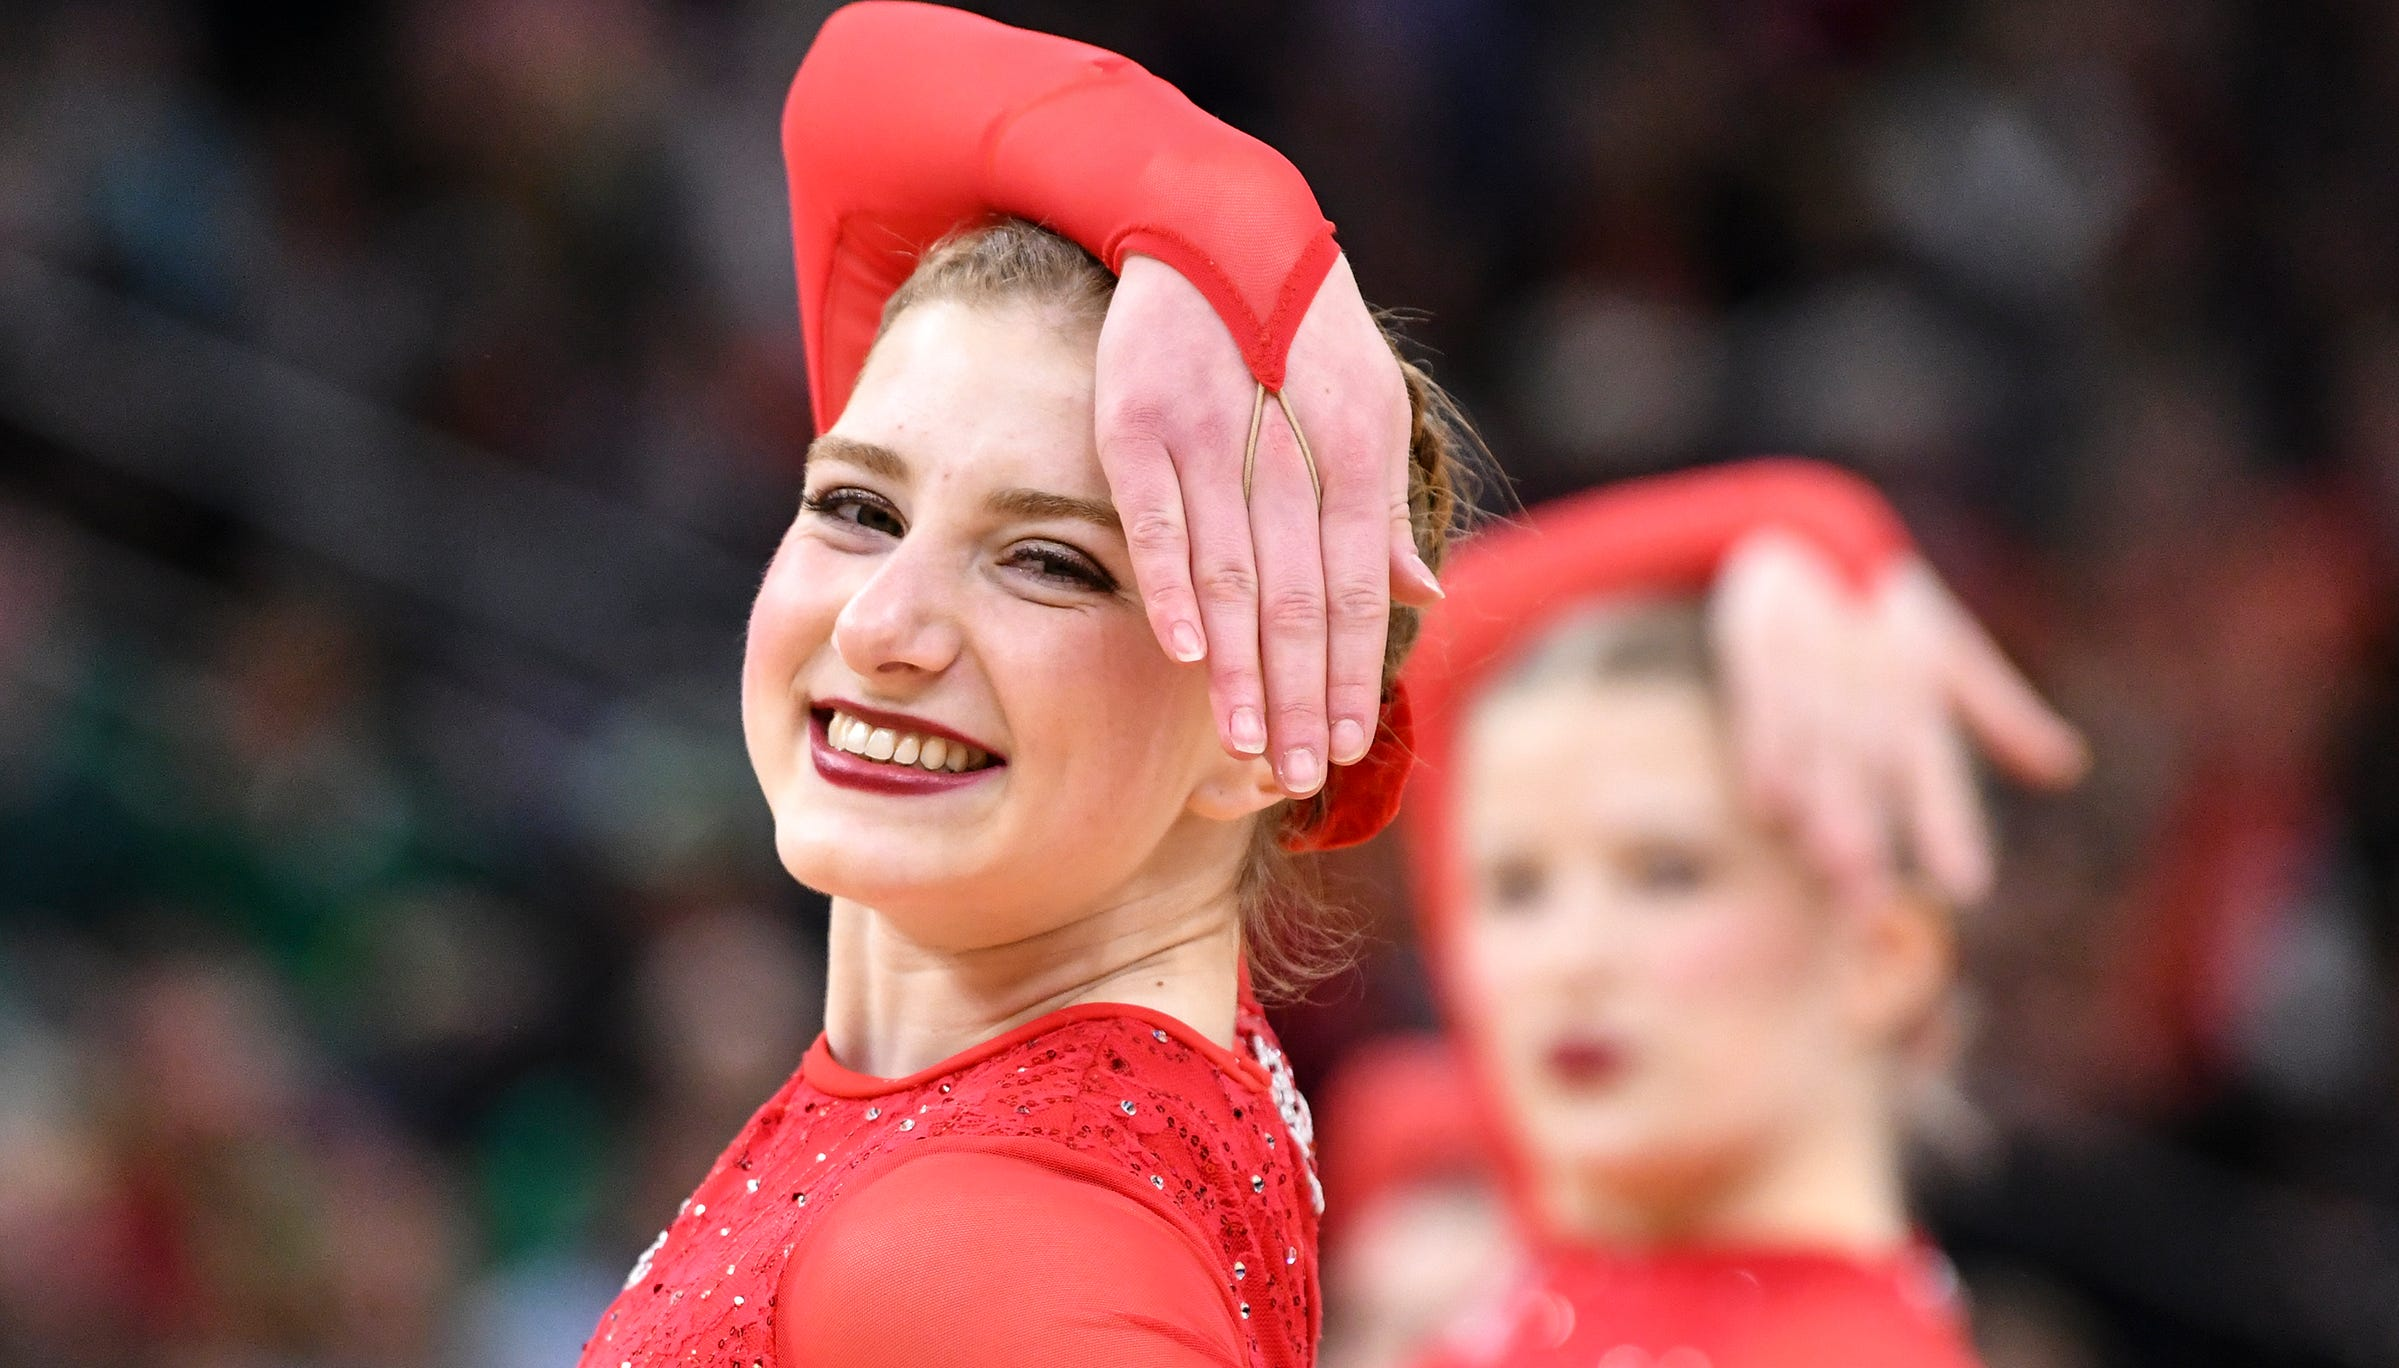 Live updates: State dance team championships